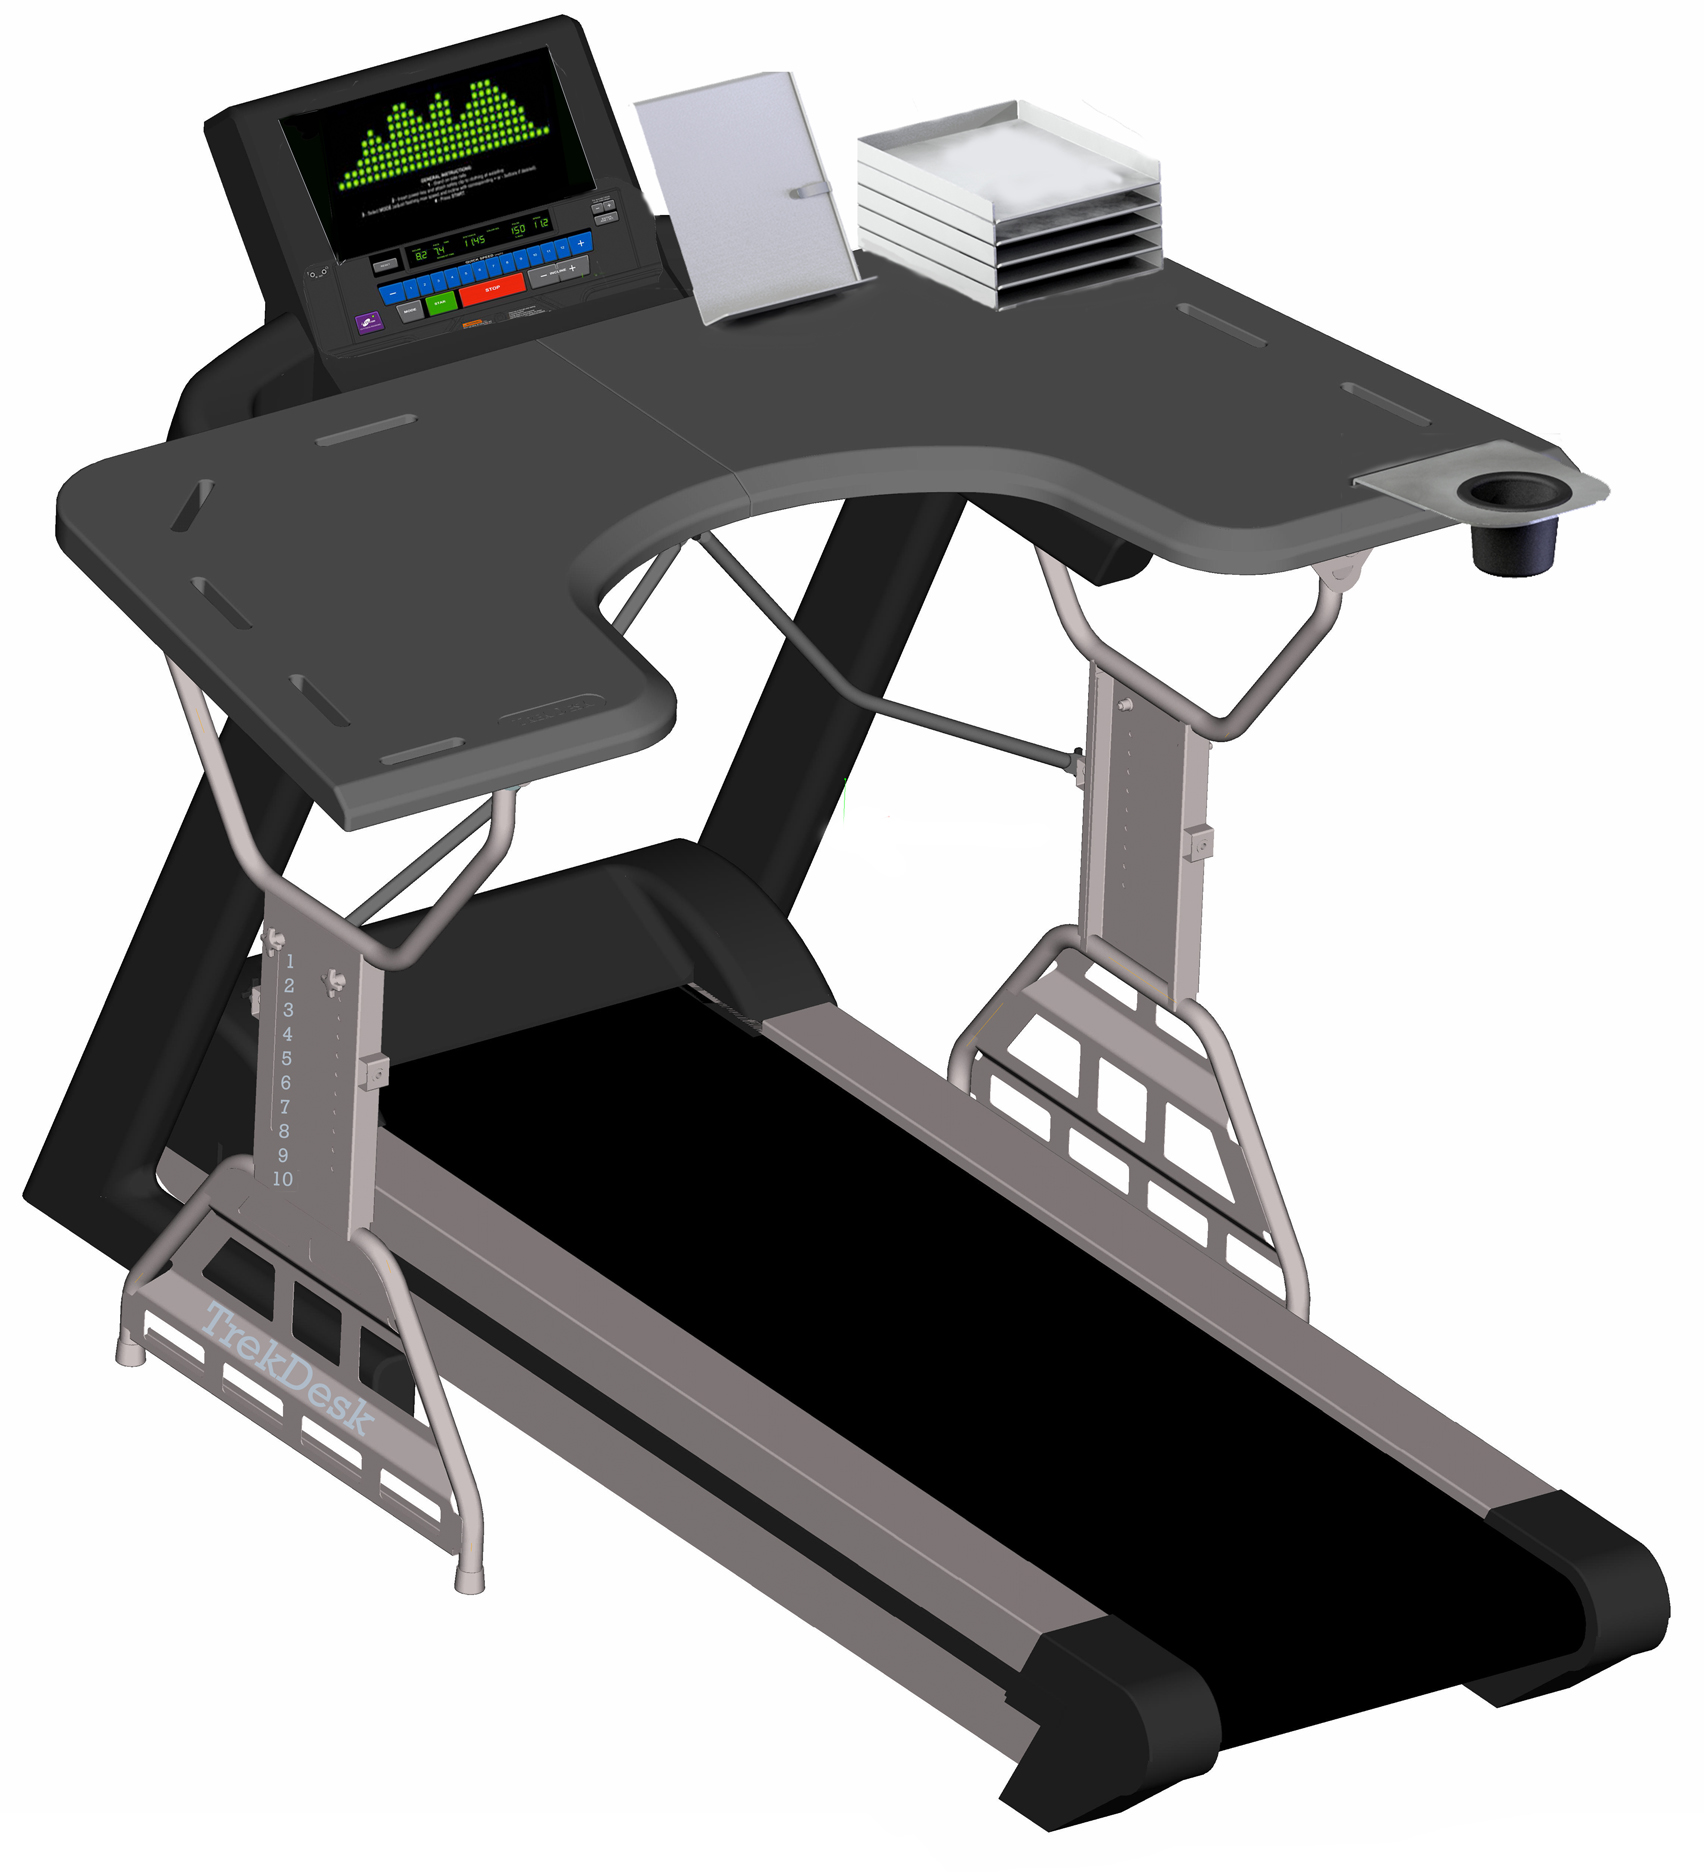 Treadmill For Desk At Work: Reducing Healthcare Costs For Small Business With